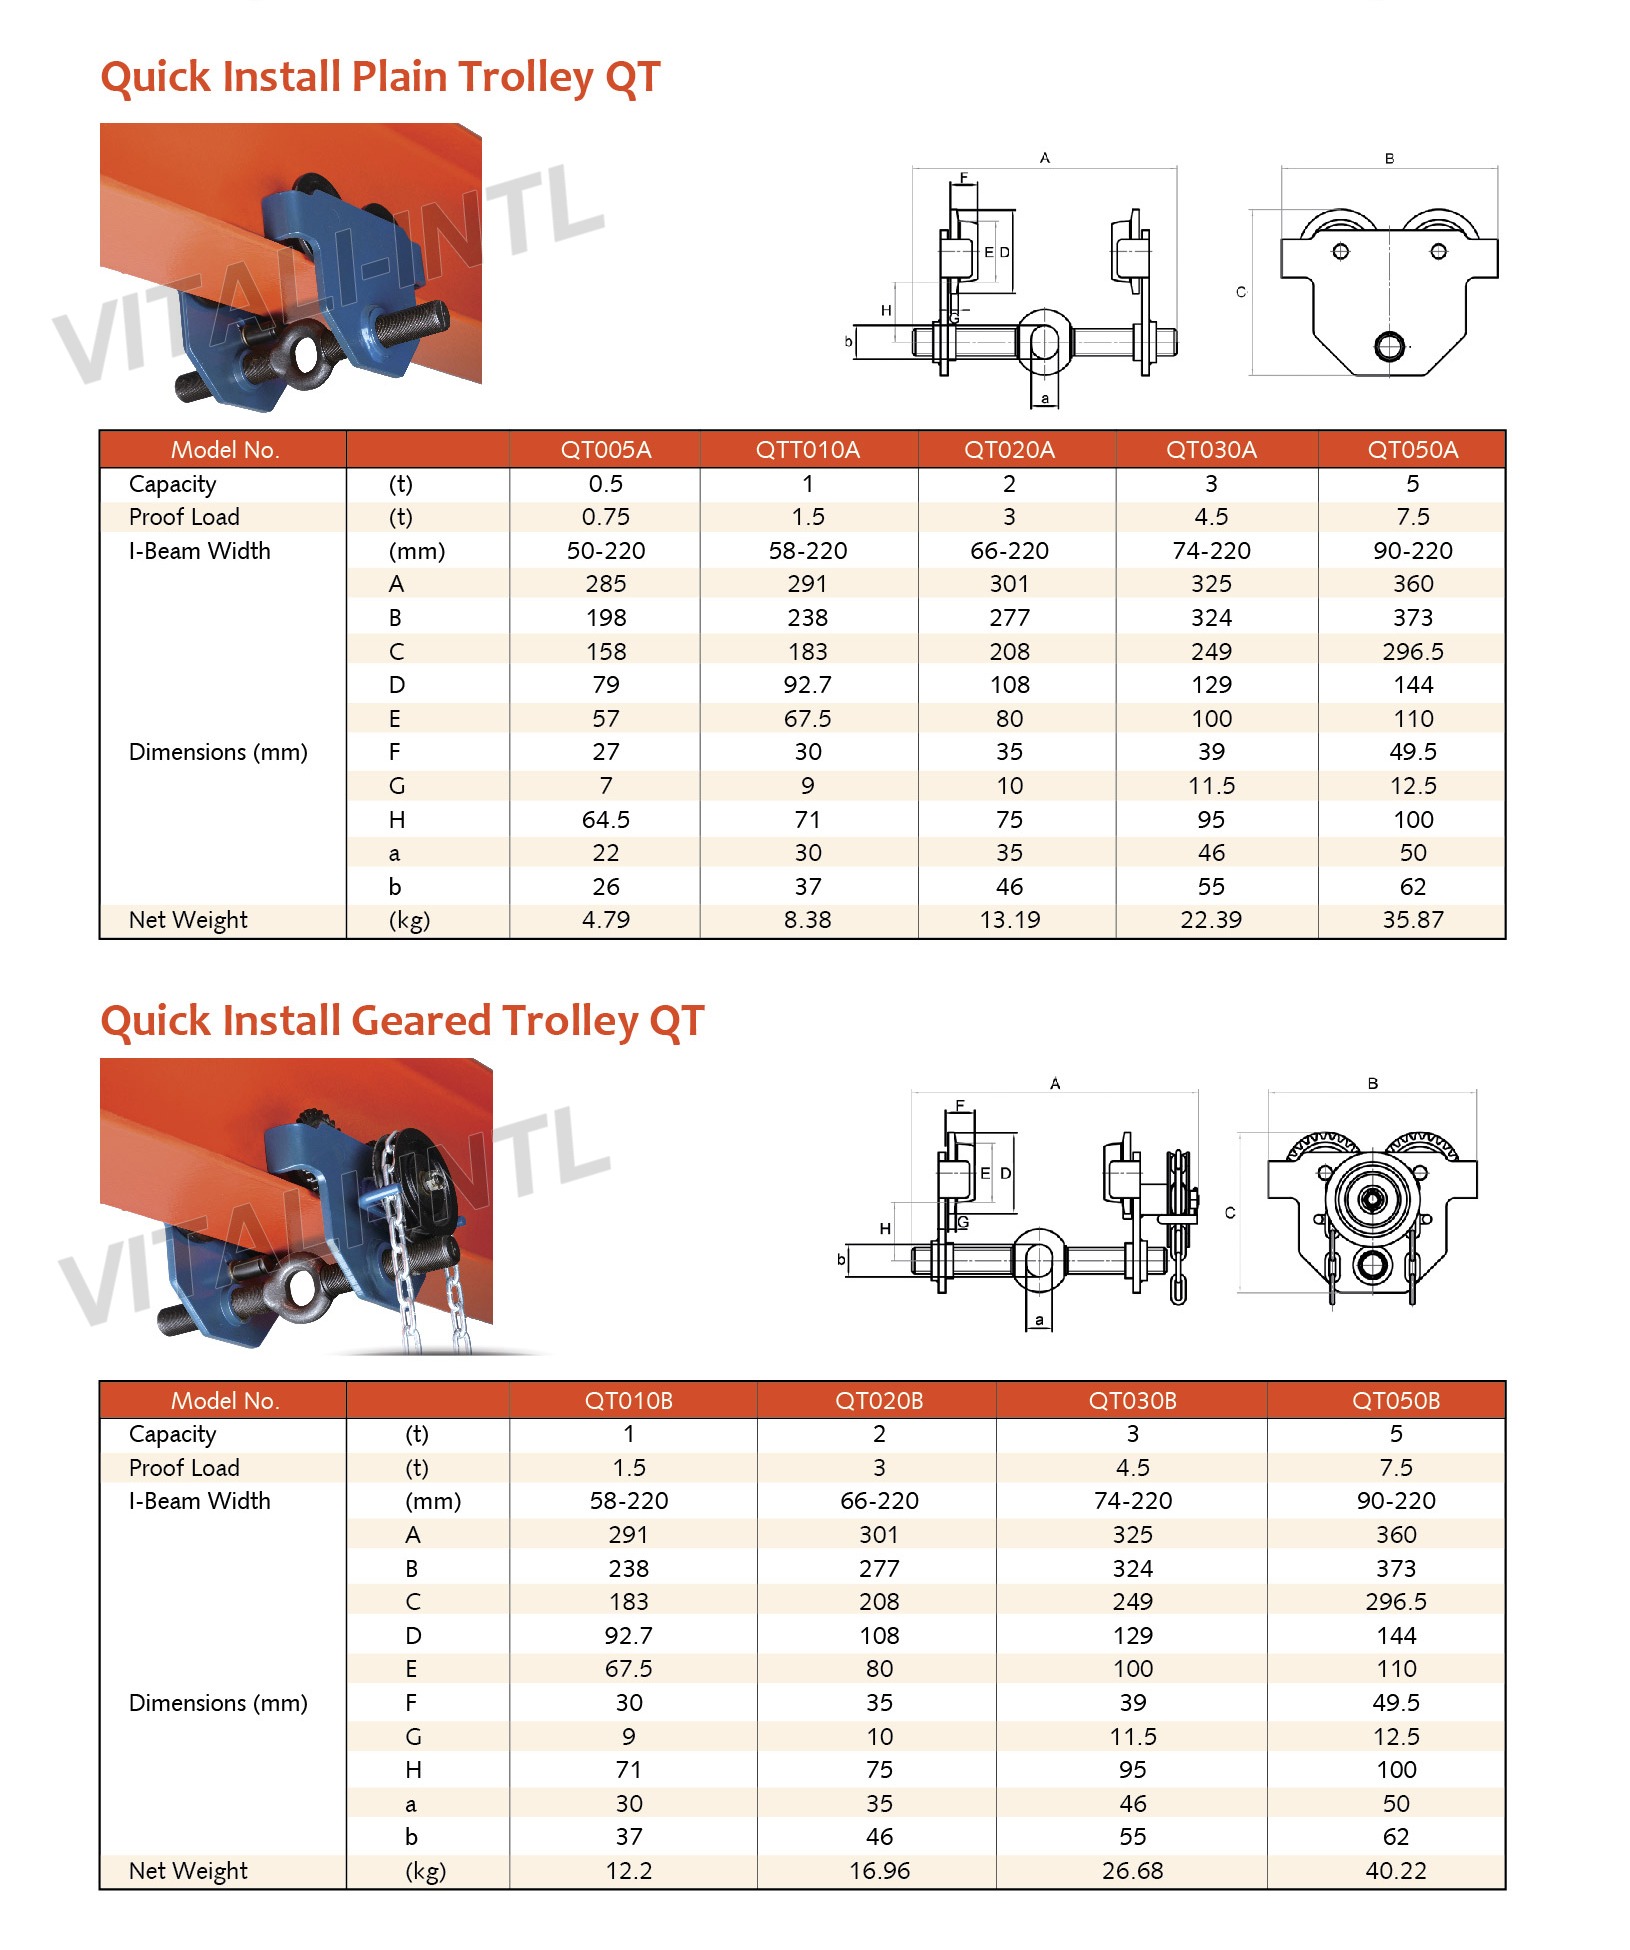 VITALI-INTL Plain Trolley VP-II Type & Geared Trolley VG-III Type Specifications